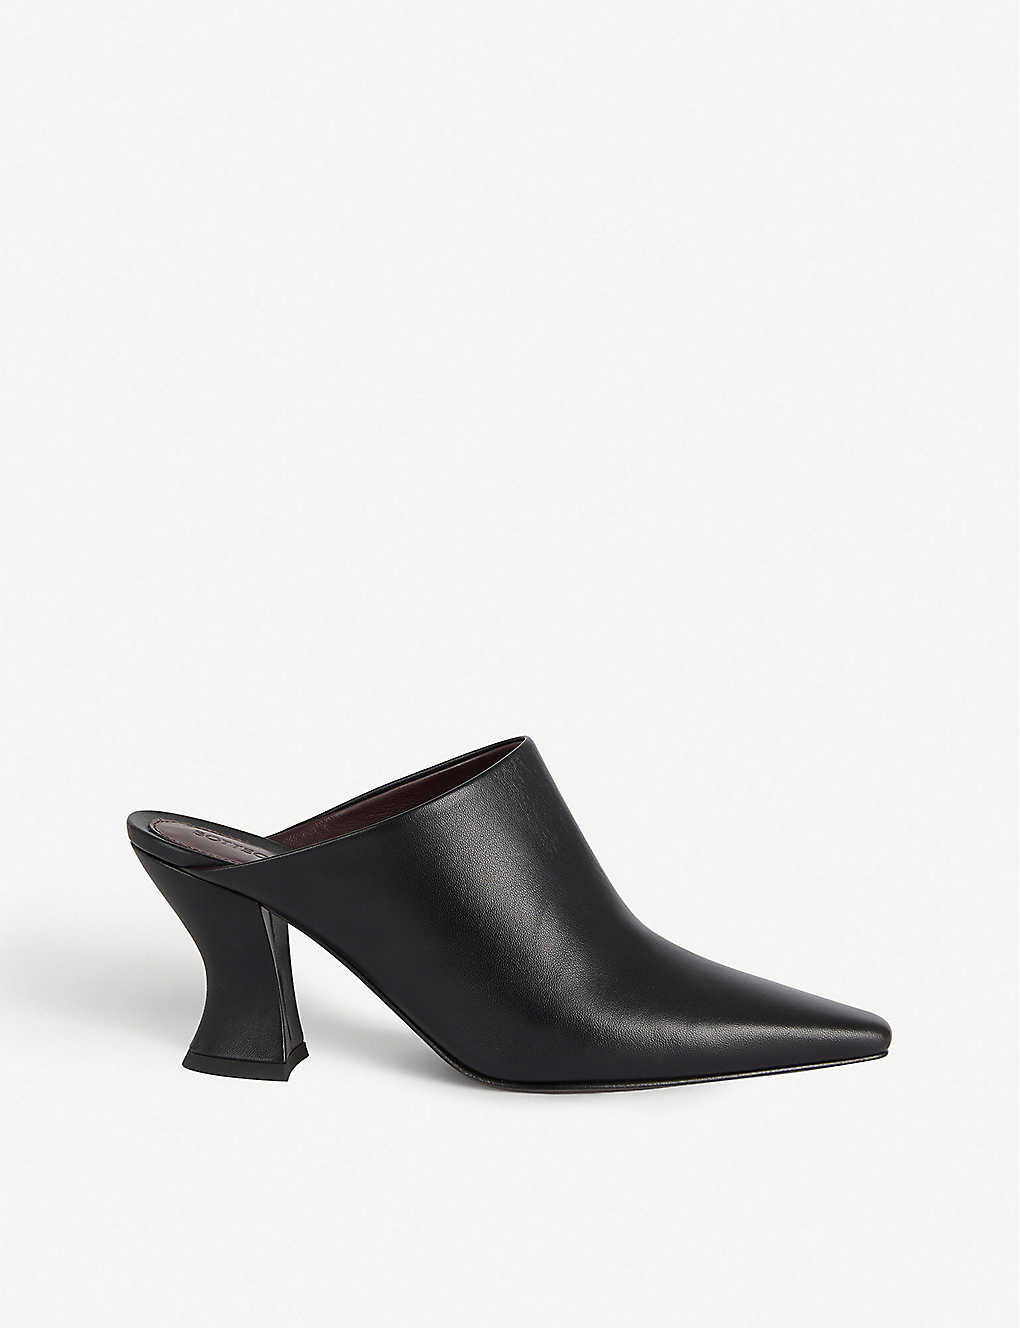 BOTTEGA VENETA: Block heel leather mules